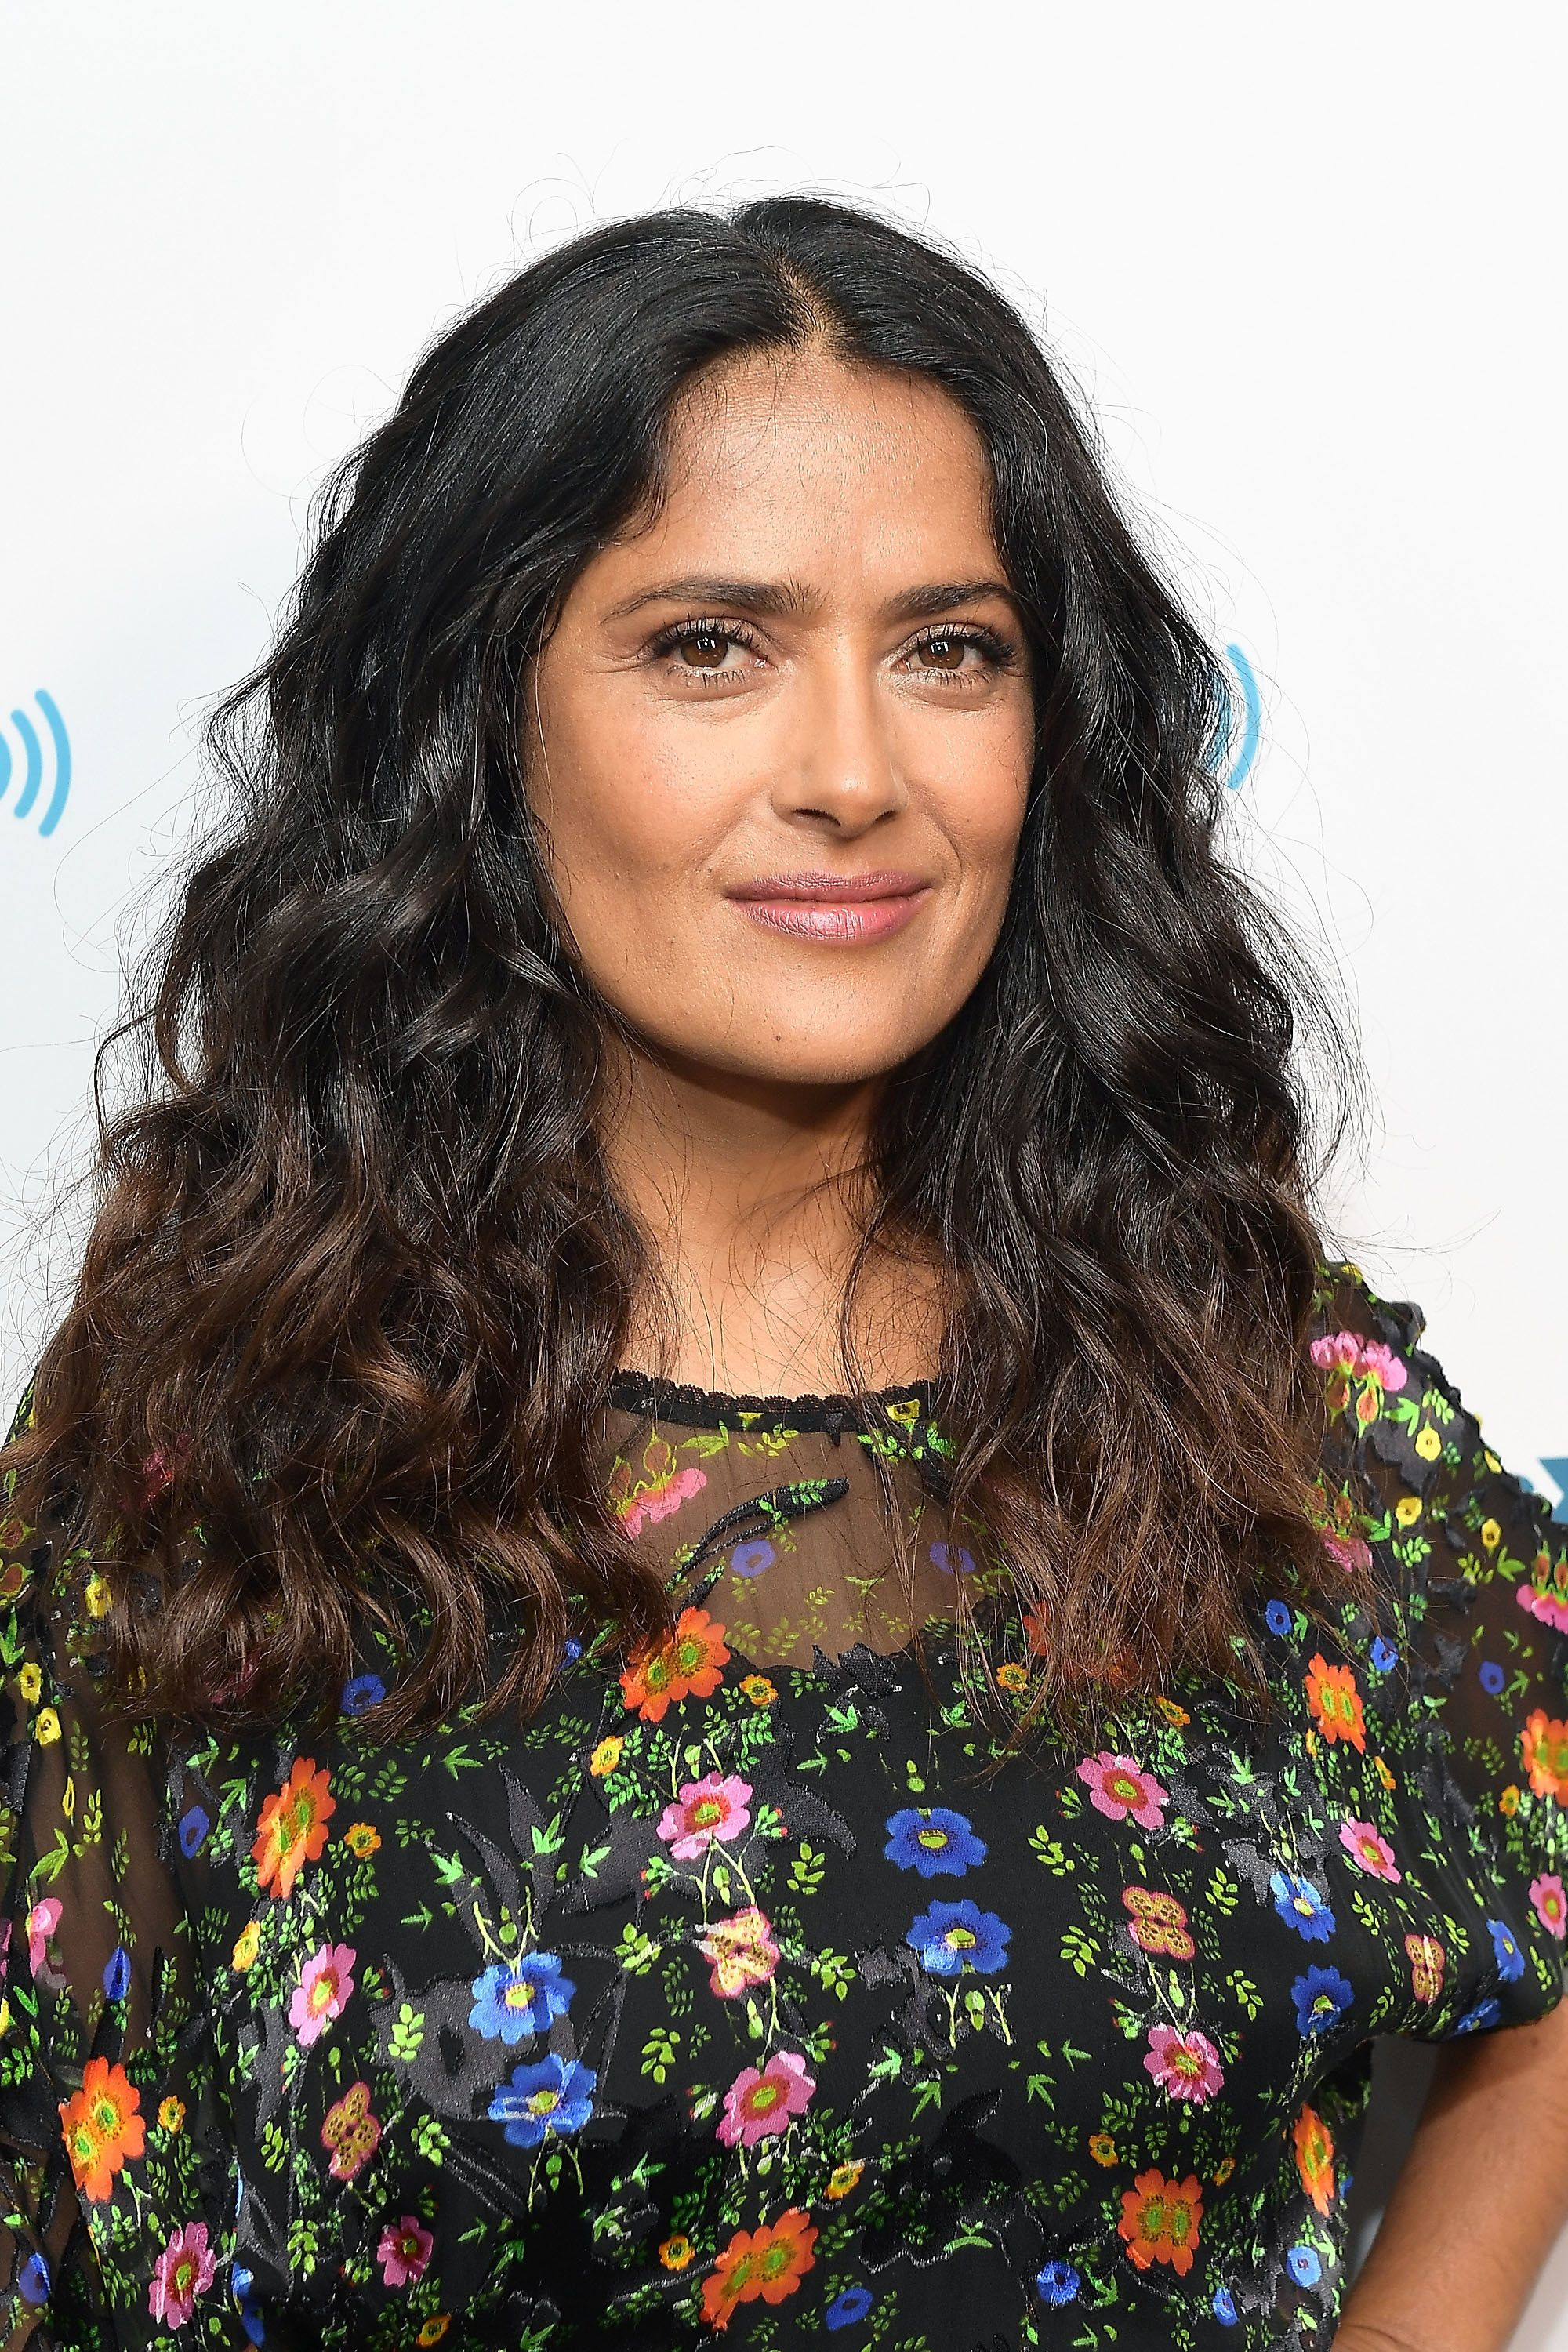 LOS ANGELES, CA - AUGUST 17:  Actress Salma Hayek visits the SiriusXM Studios on August 17, 2017 in Los Angeles, California.  (Photo by Matt Winkelmeyer/Getty Images)